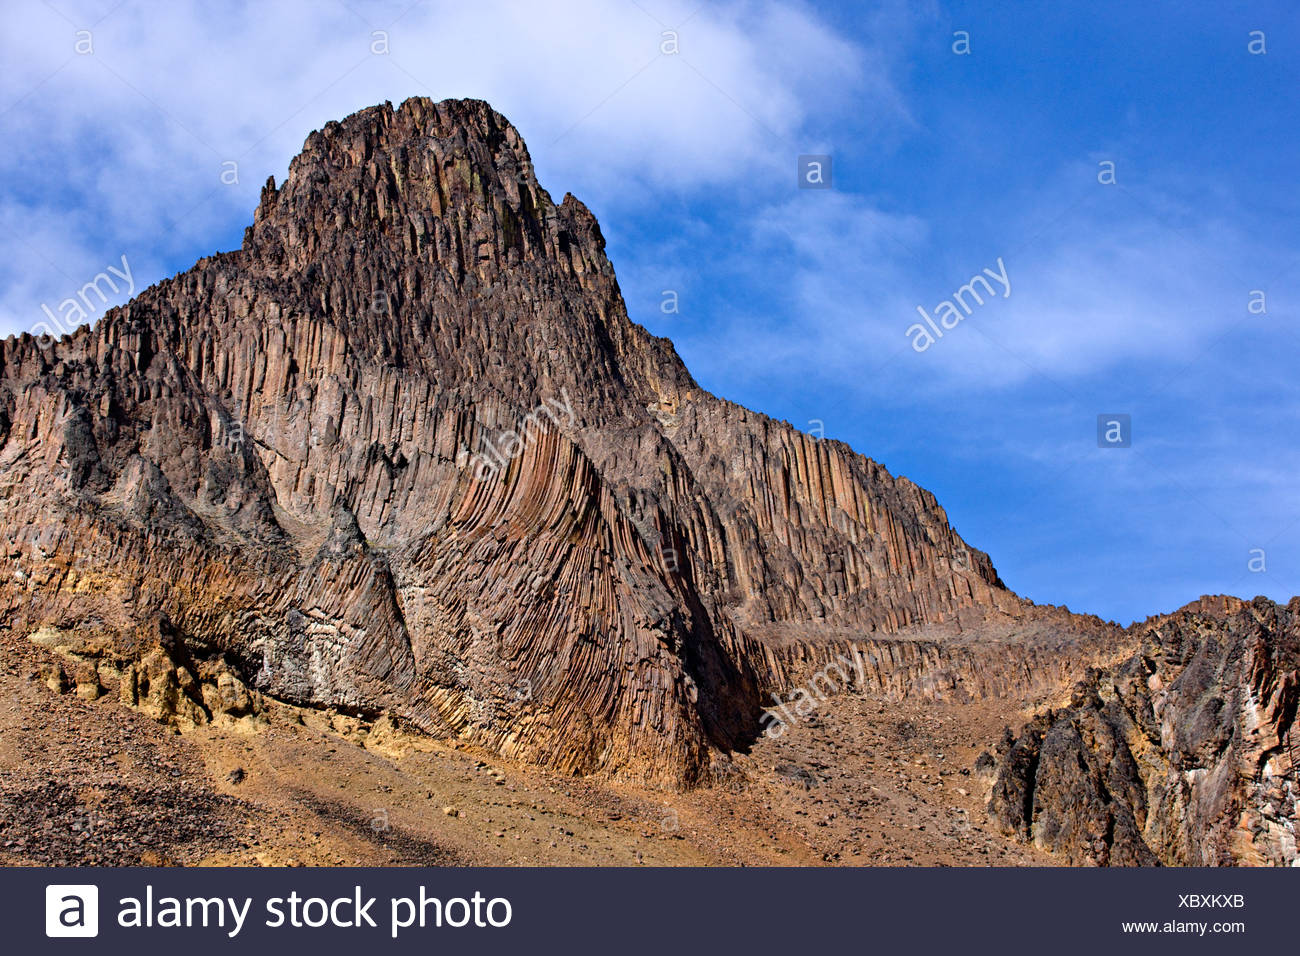 Volcanic landscape & Pipe Organ Mountain in the Illgachuz Mountains of Itcha-Illgachuz Park in British Columbia Canada - Stock Image